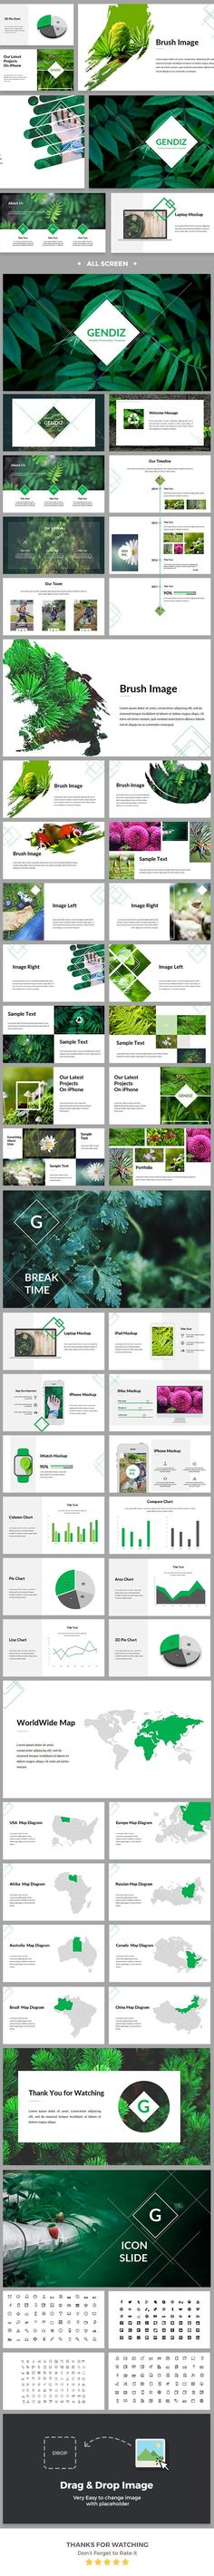 Gendiz Powerpoint Template - Business PowerPoint Templates,Creative #PowerPoint #Templates Download here:  https://graphicriver.net/item/gendiz-powerpoint-template/19314425?ref=suz_562geid